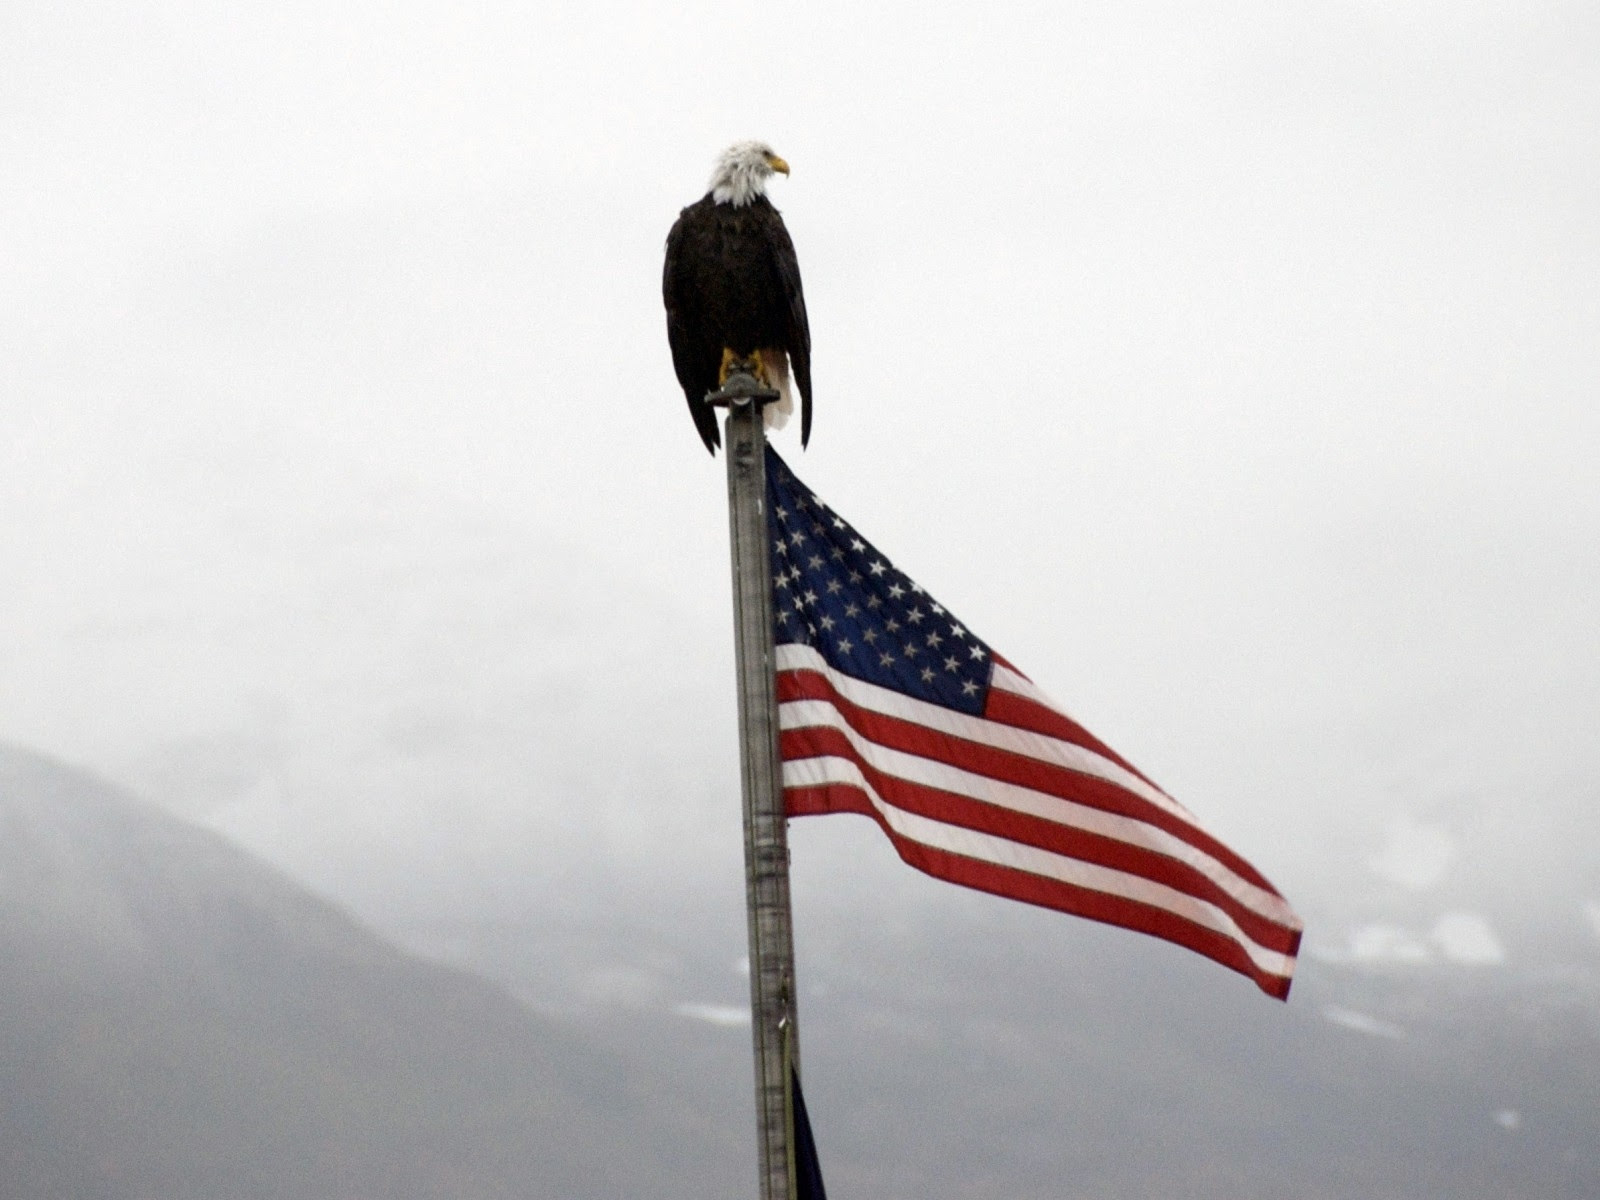 Eagles Flags Usa 1600x1200 Wallpaper High Quality Wallpapers High